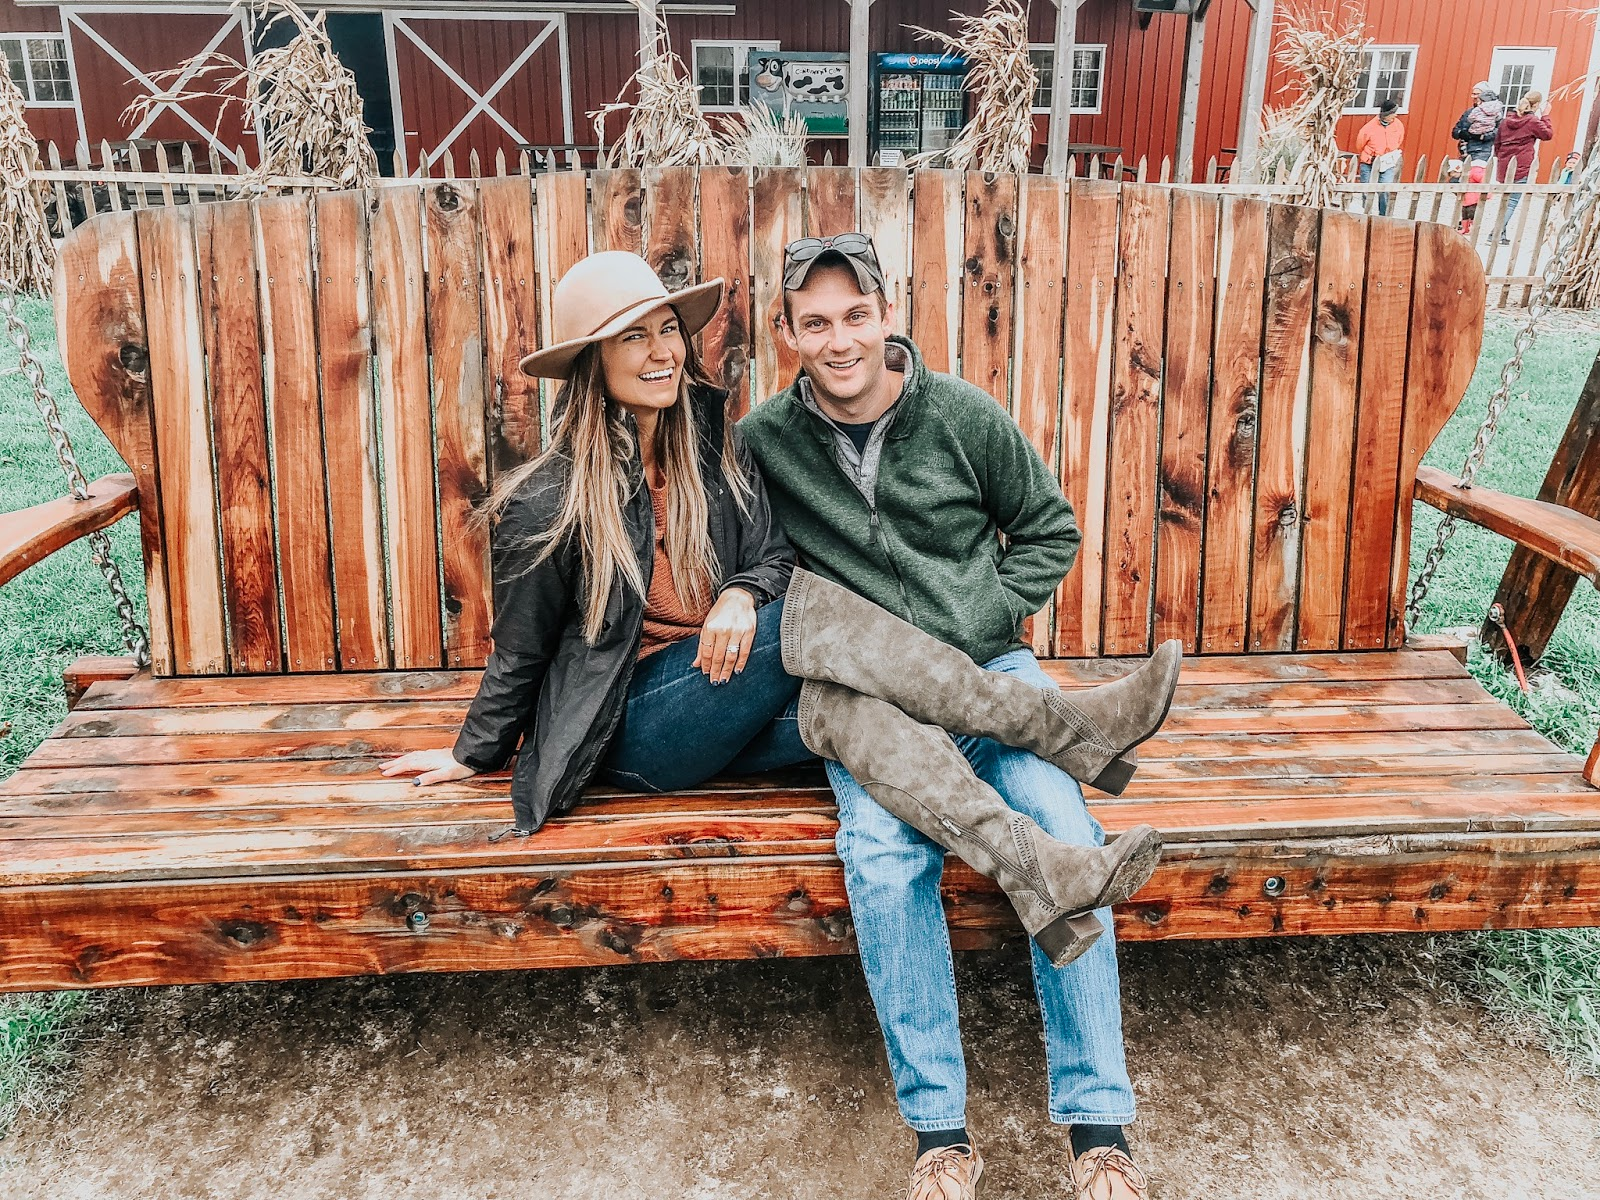 Tampa blogger hanging out on Schuster's Farm in Deerfield, Wisconsin